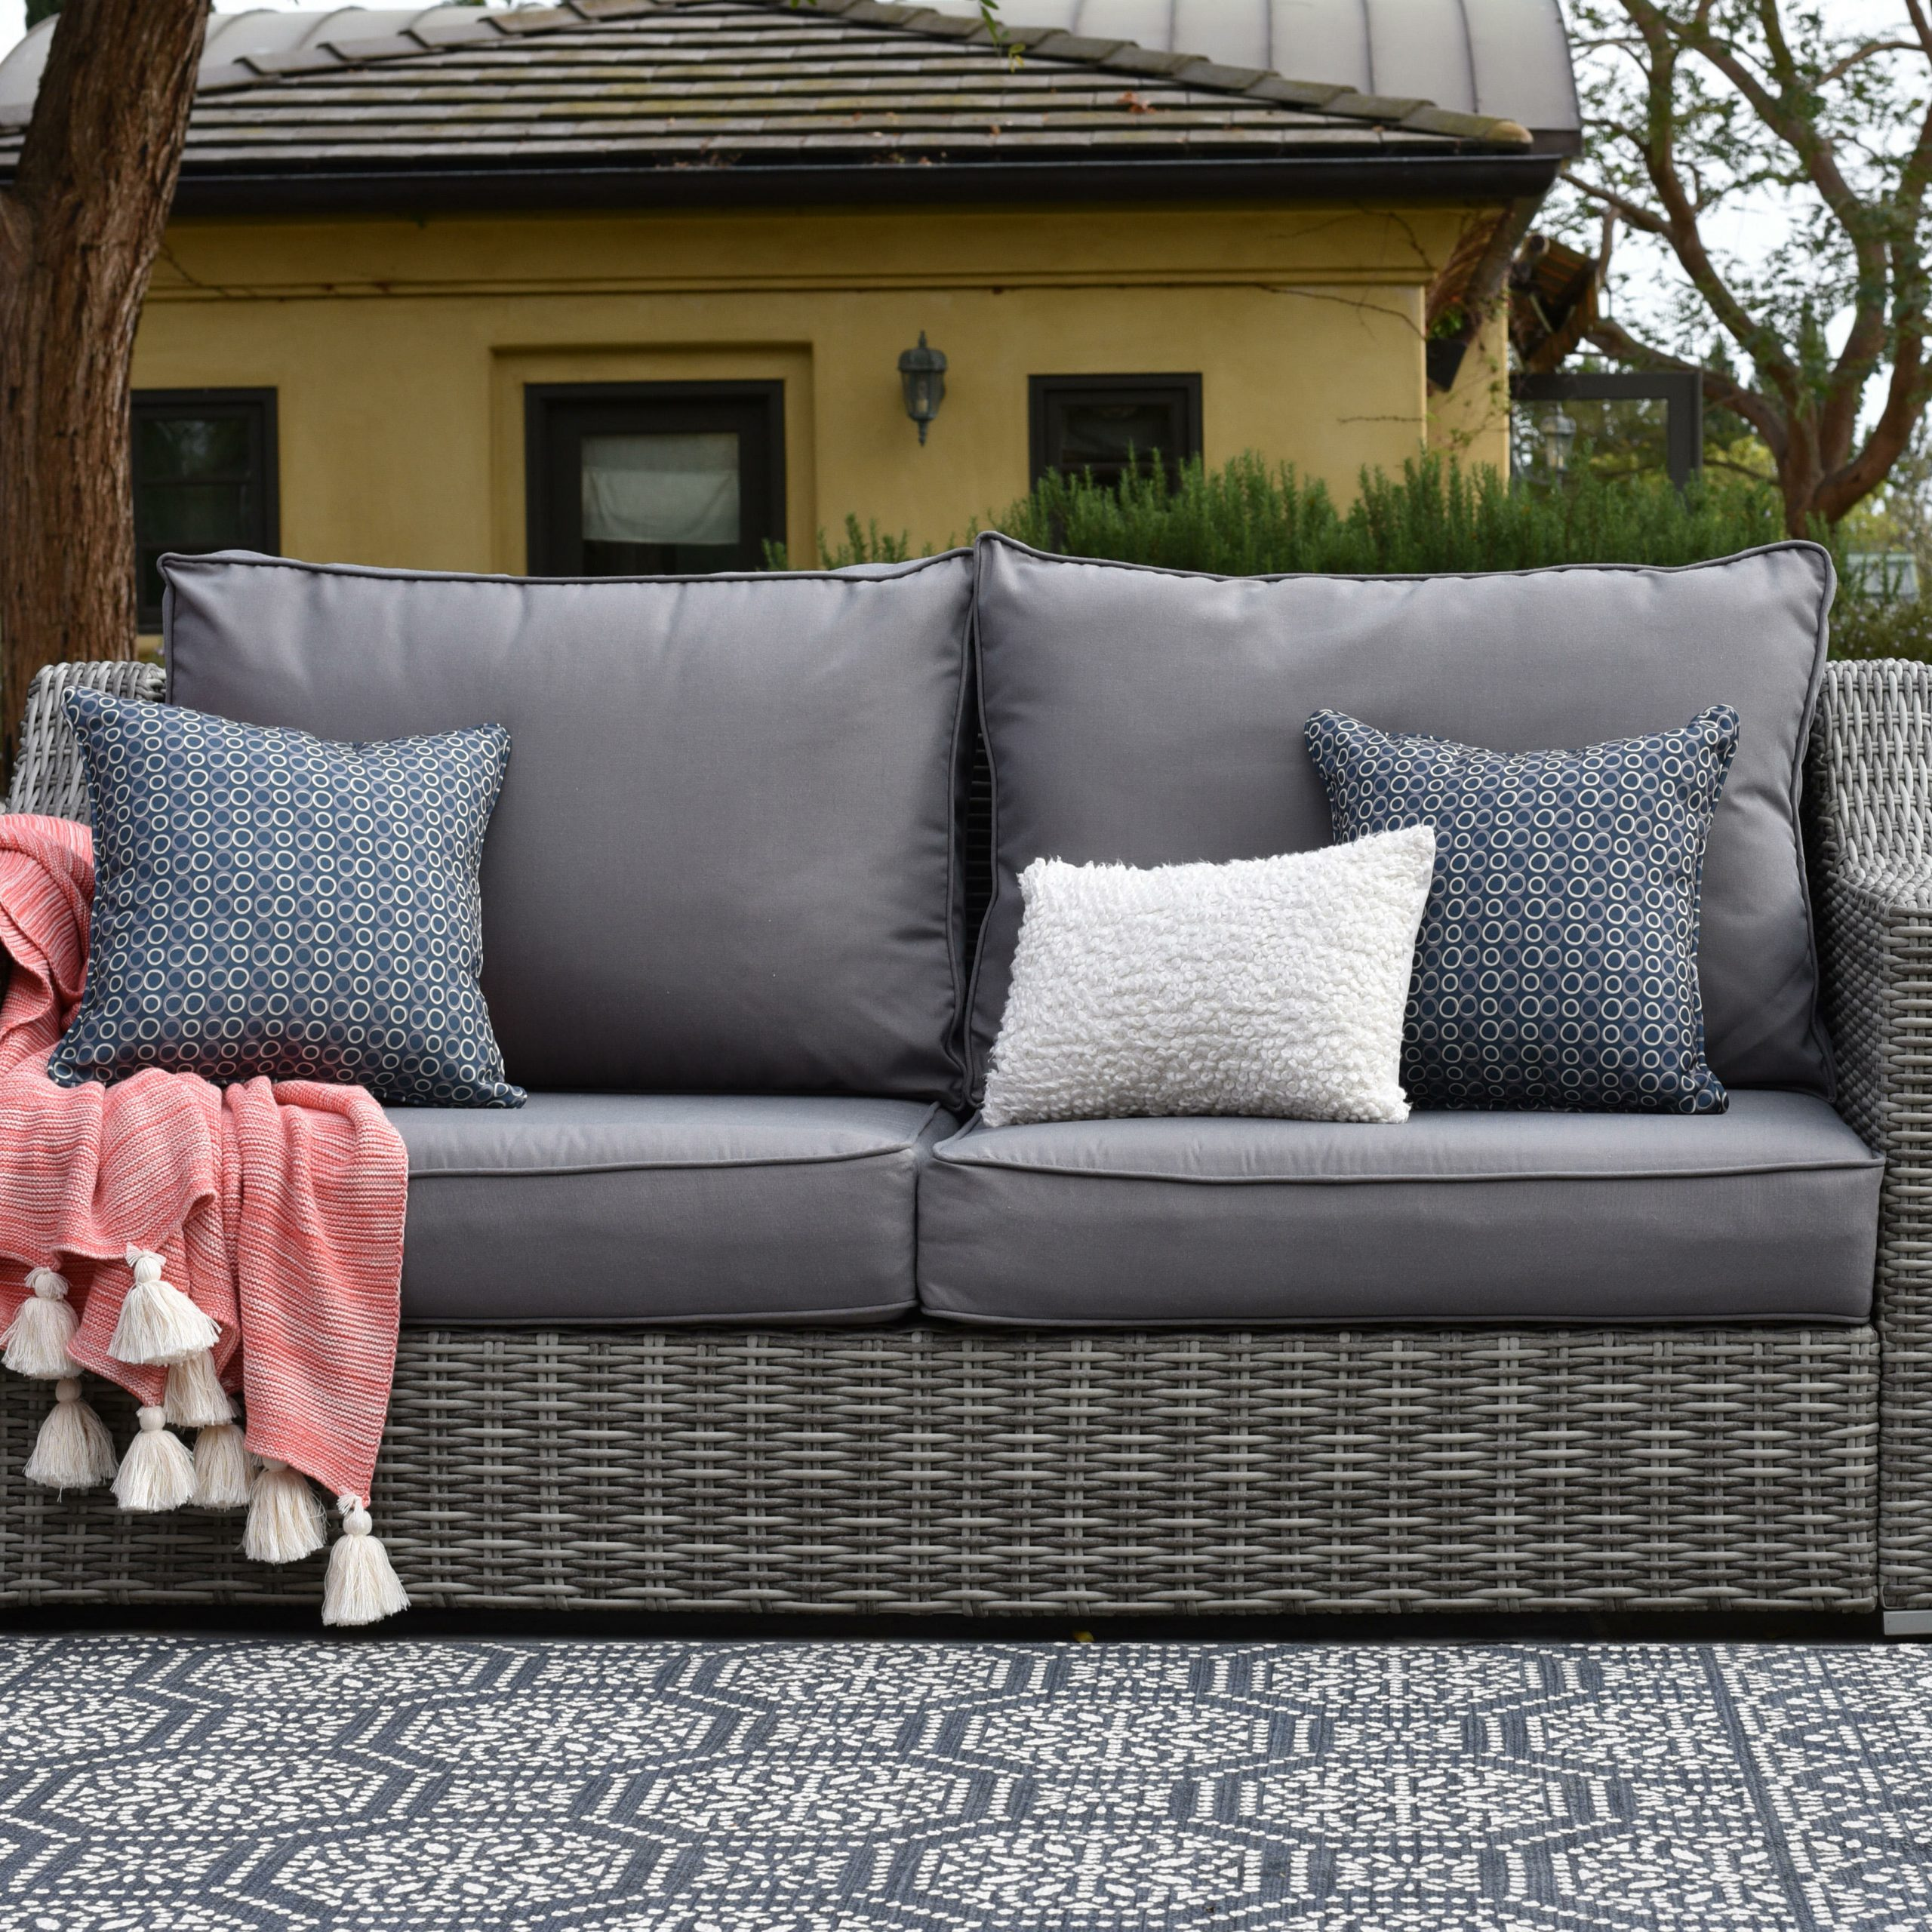 Carlisle Patio Sofas With Cushions Intended For Recent Vallauris Patio Sofa With Cushions (View 7 of 25)